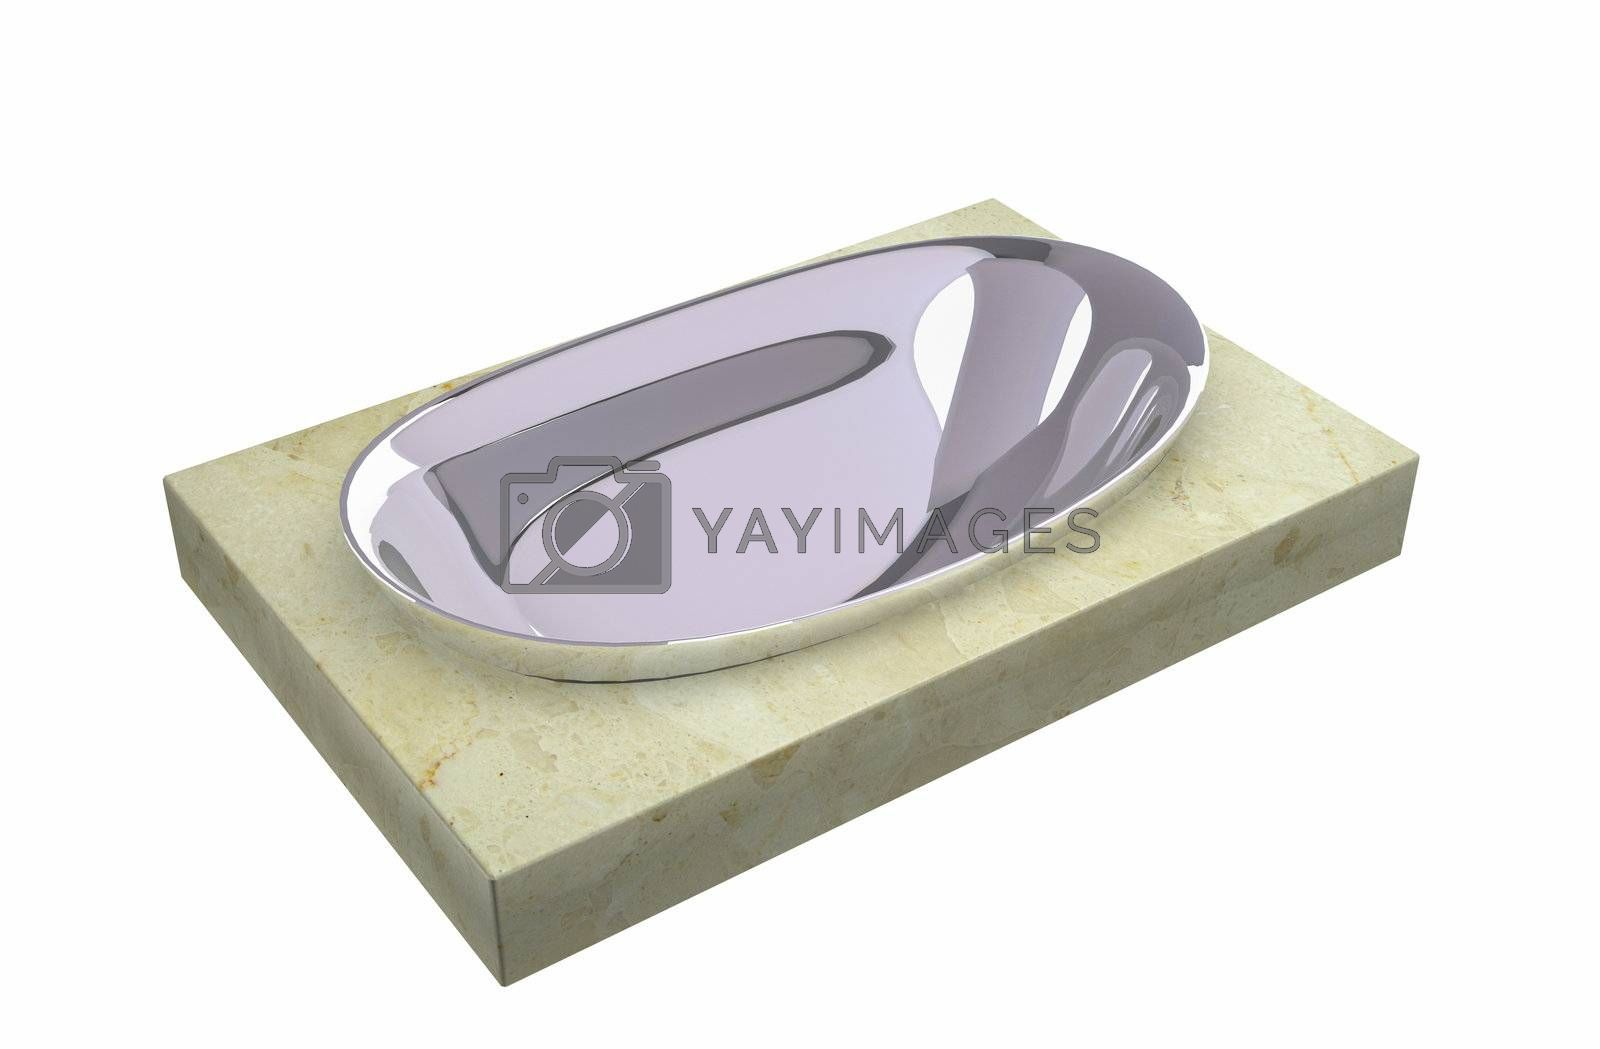 Chrome soap holder sitting on a granite slab, isolated against a white background.